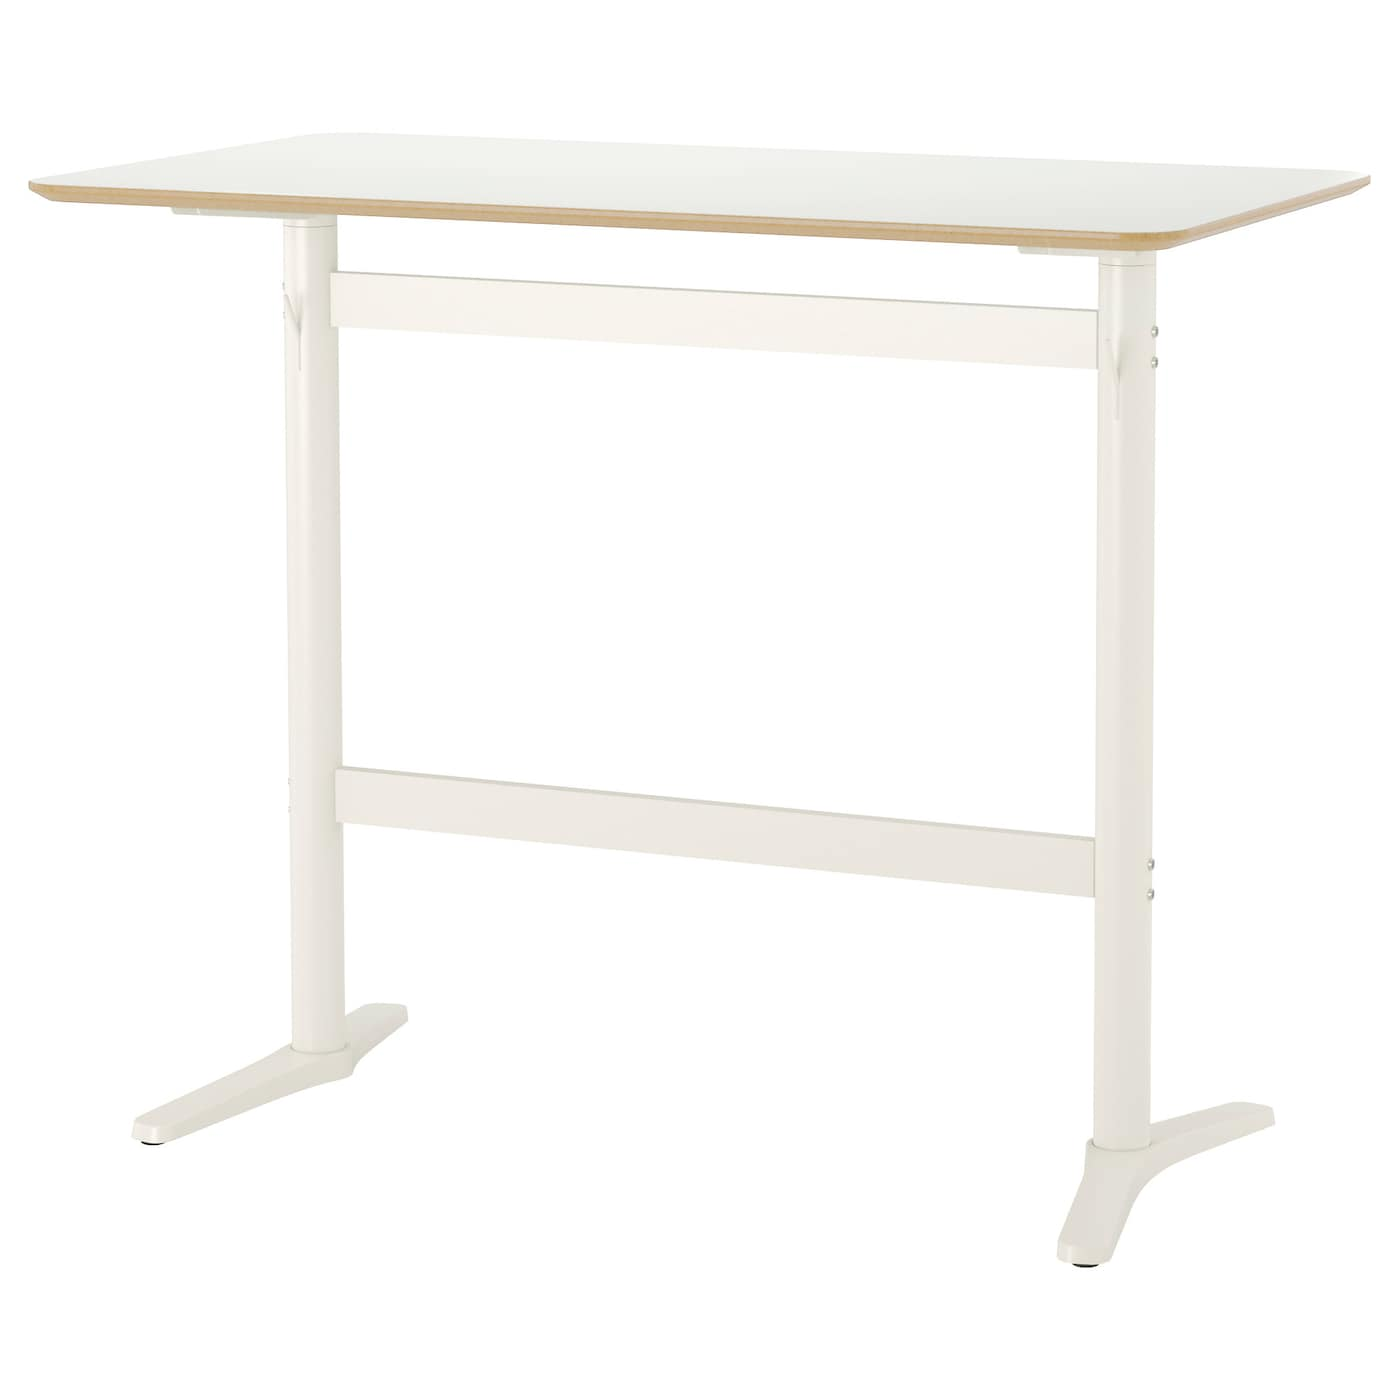 Billsta bar table white white 130 x 70 cm ikea for Tavolo bar ikea